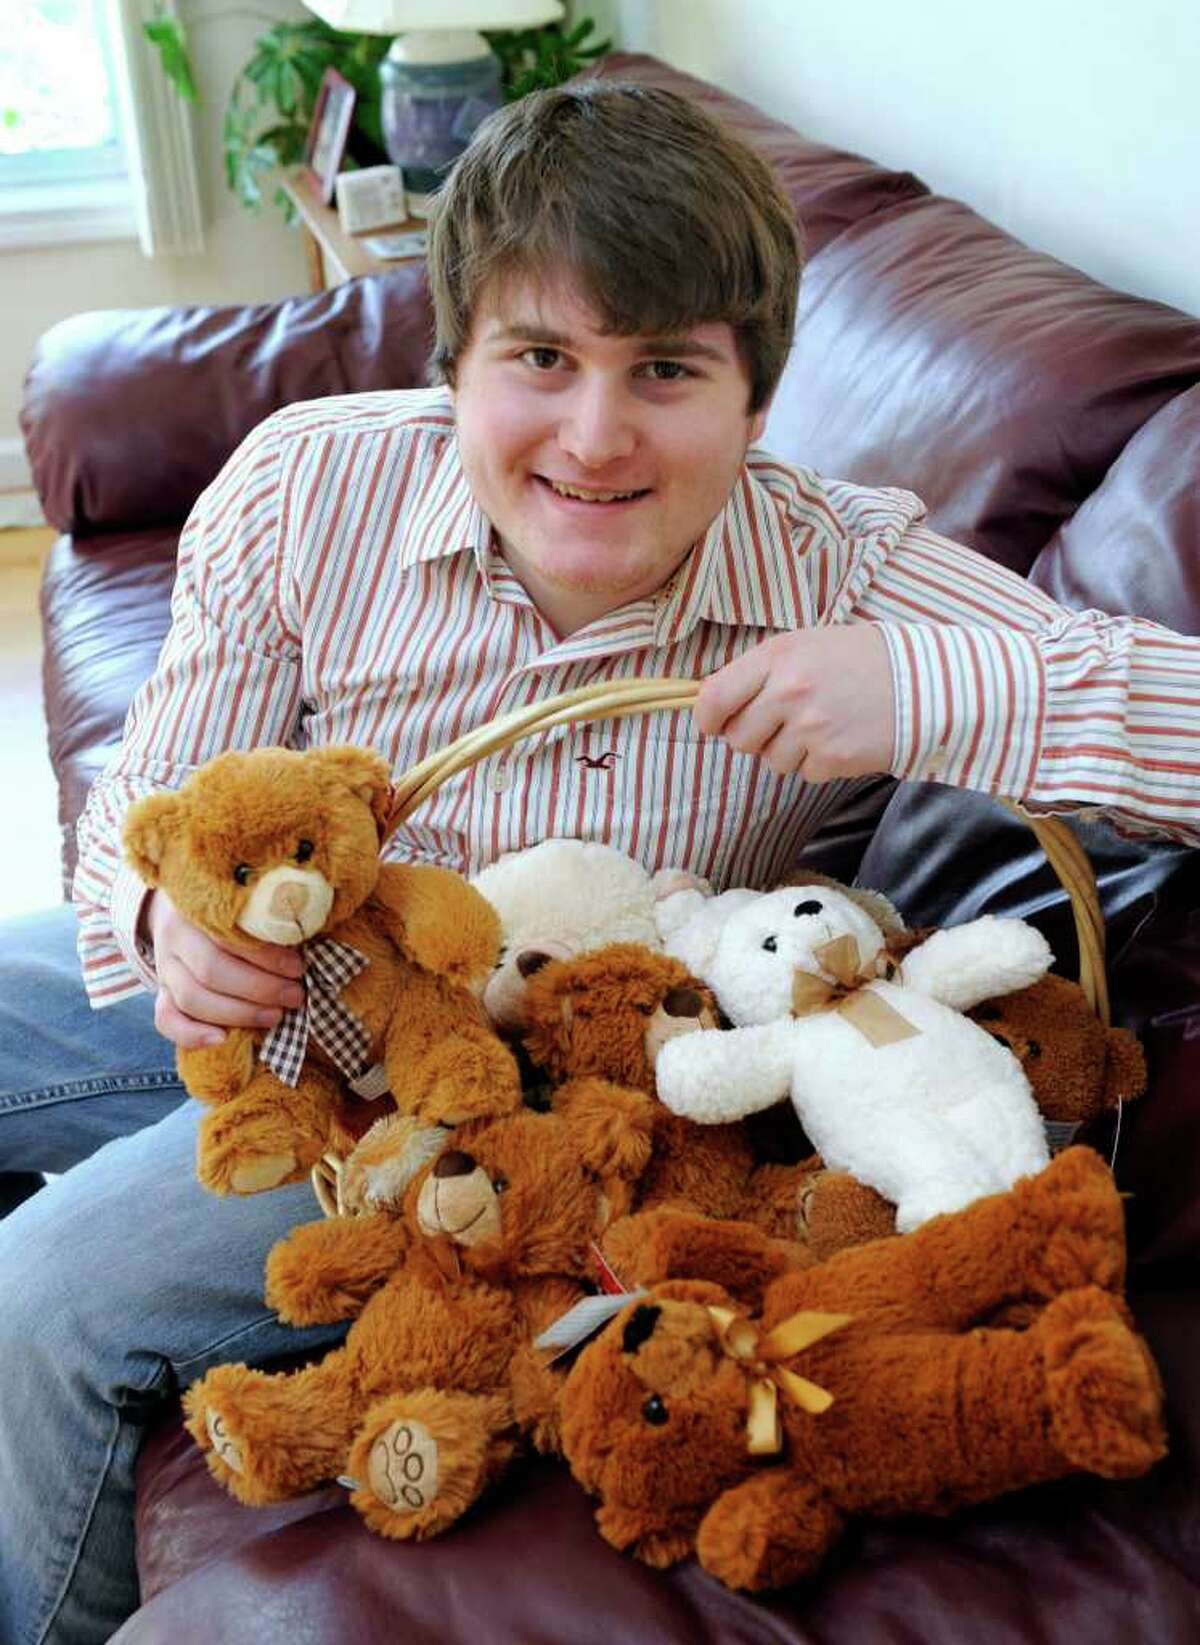 Adam Schecter, 18, of Ridgefield, poses with some the stuffed animals that he purchased with money he raises from can and bottle drives. Photo taken Friday, Dec. 30, 2011.